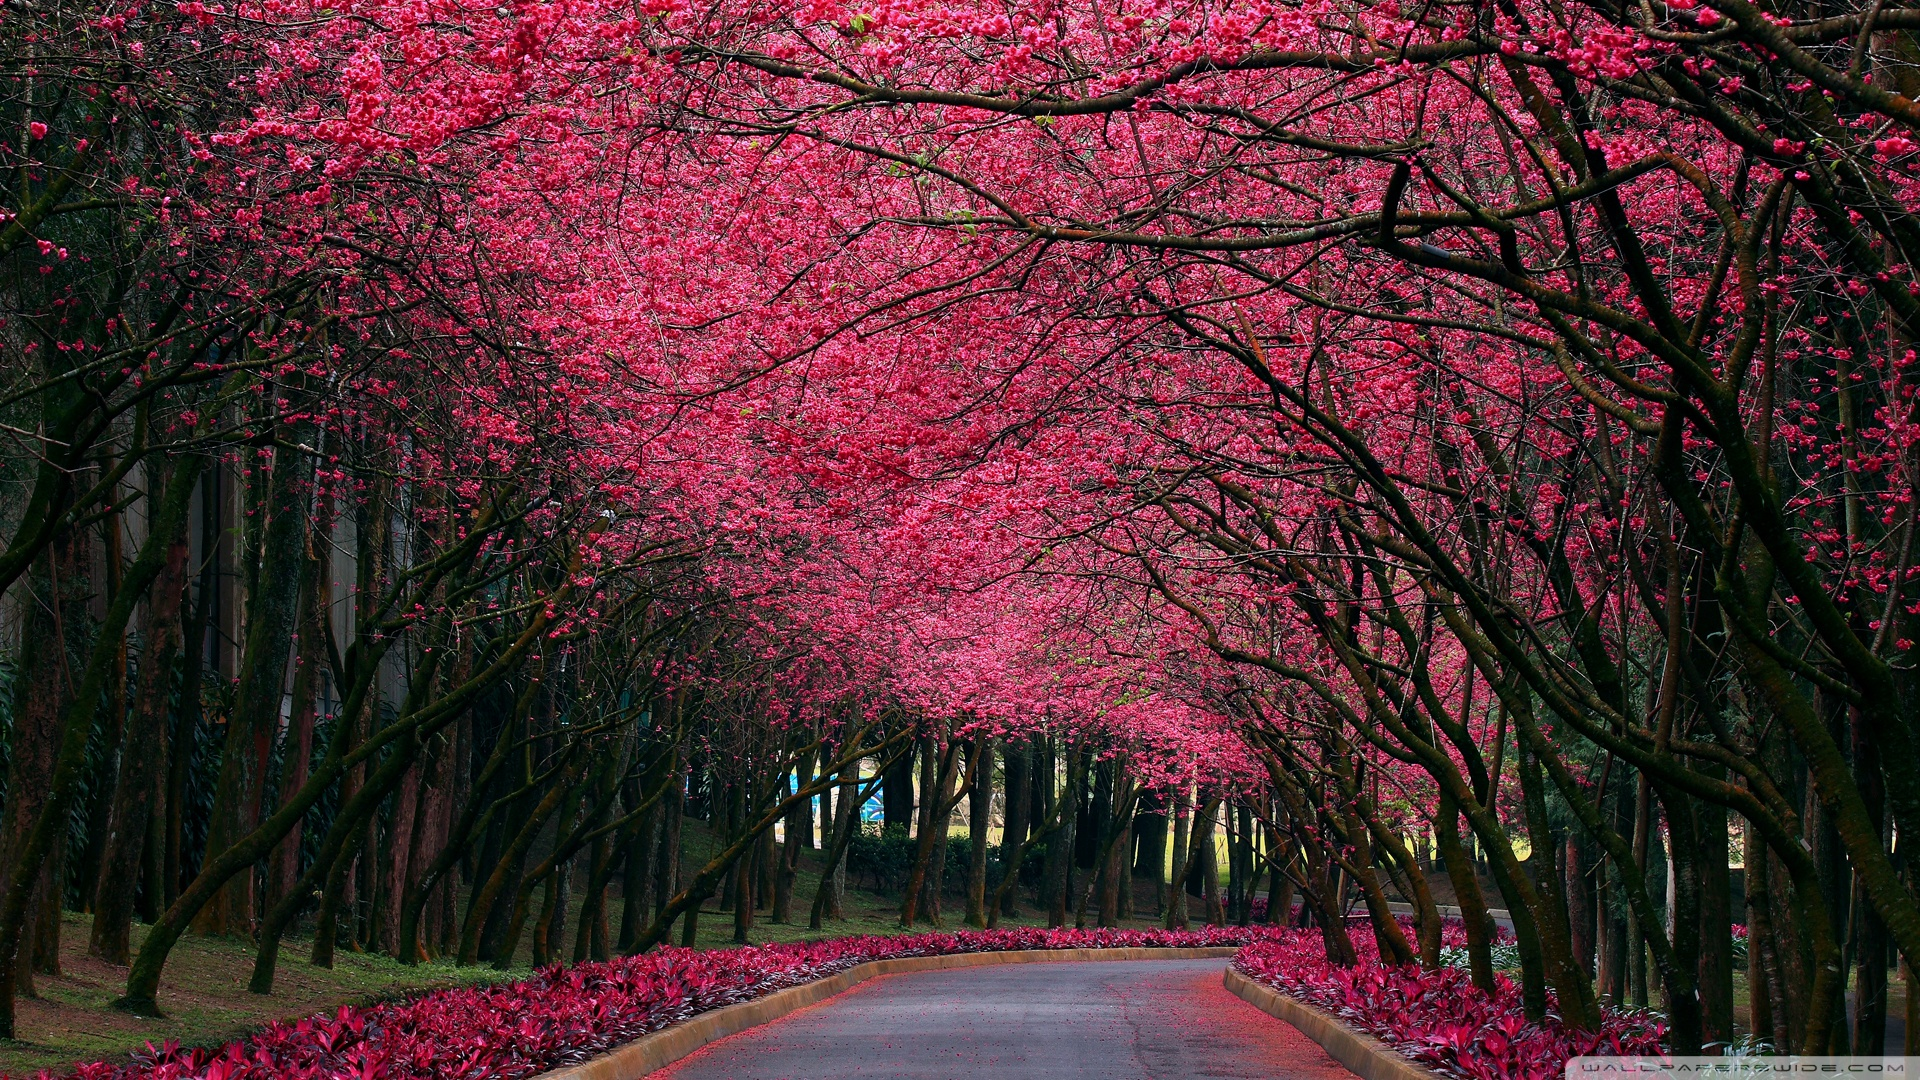 Blooming trees alley 49450